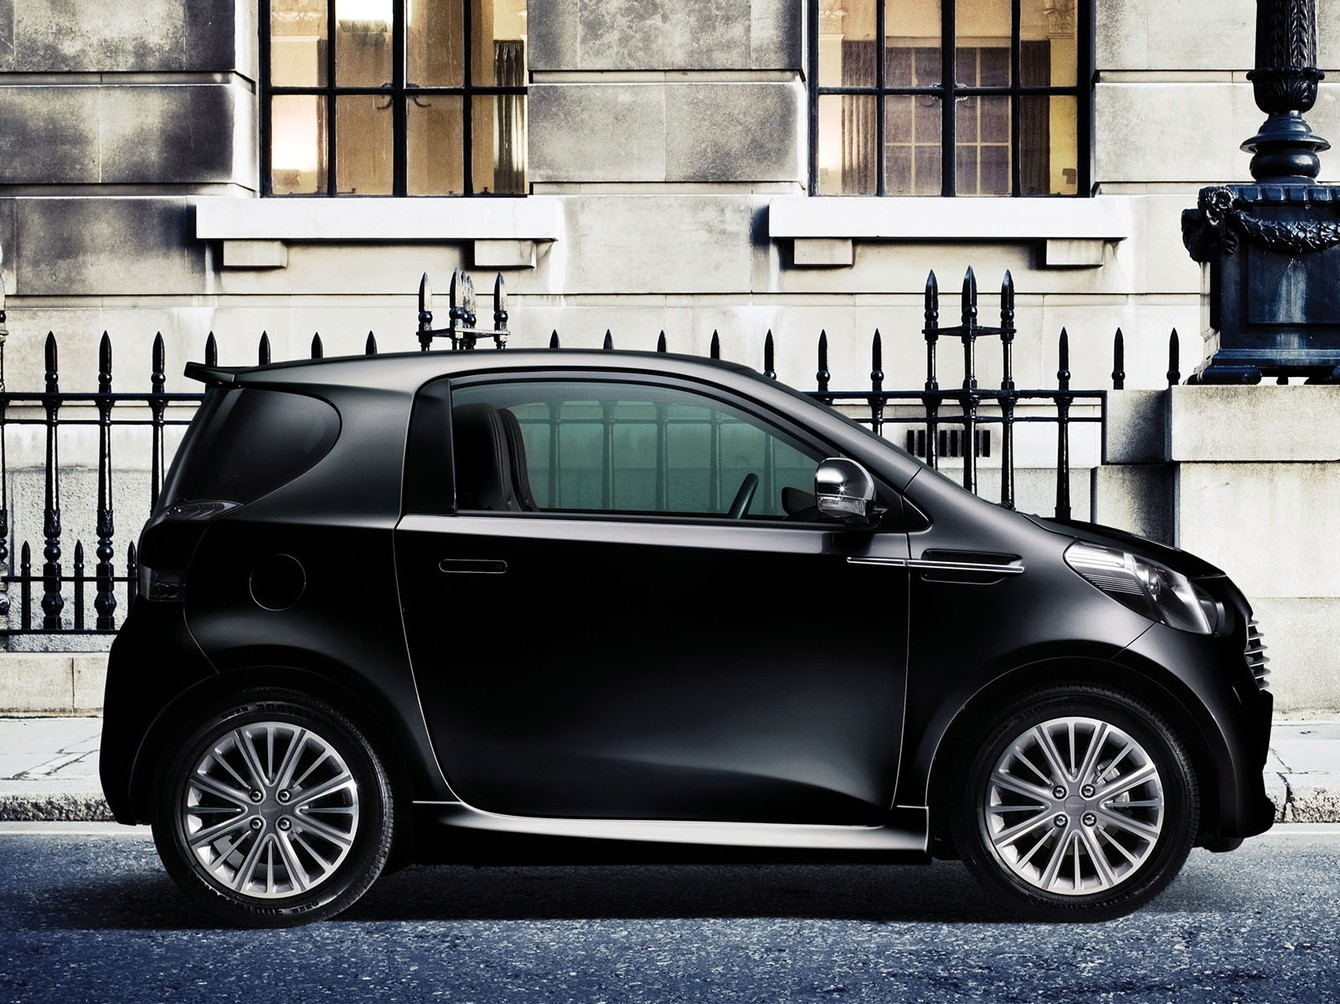 2018 Aston Martin Cygnet Concept photo - 3